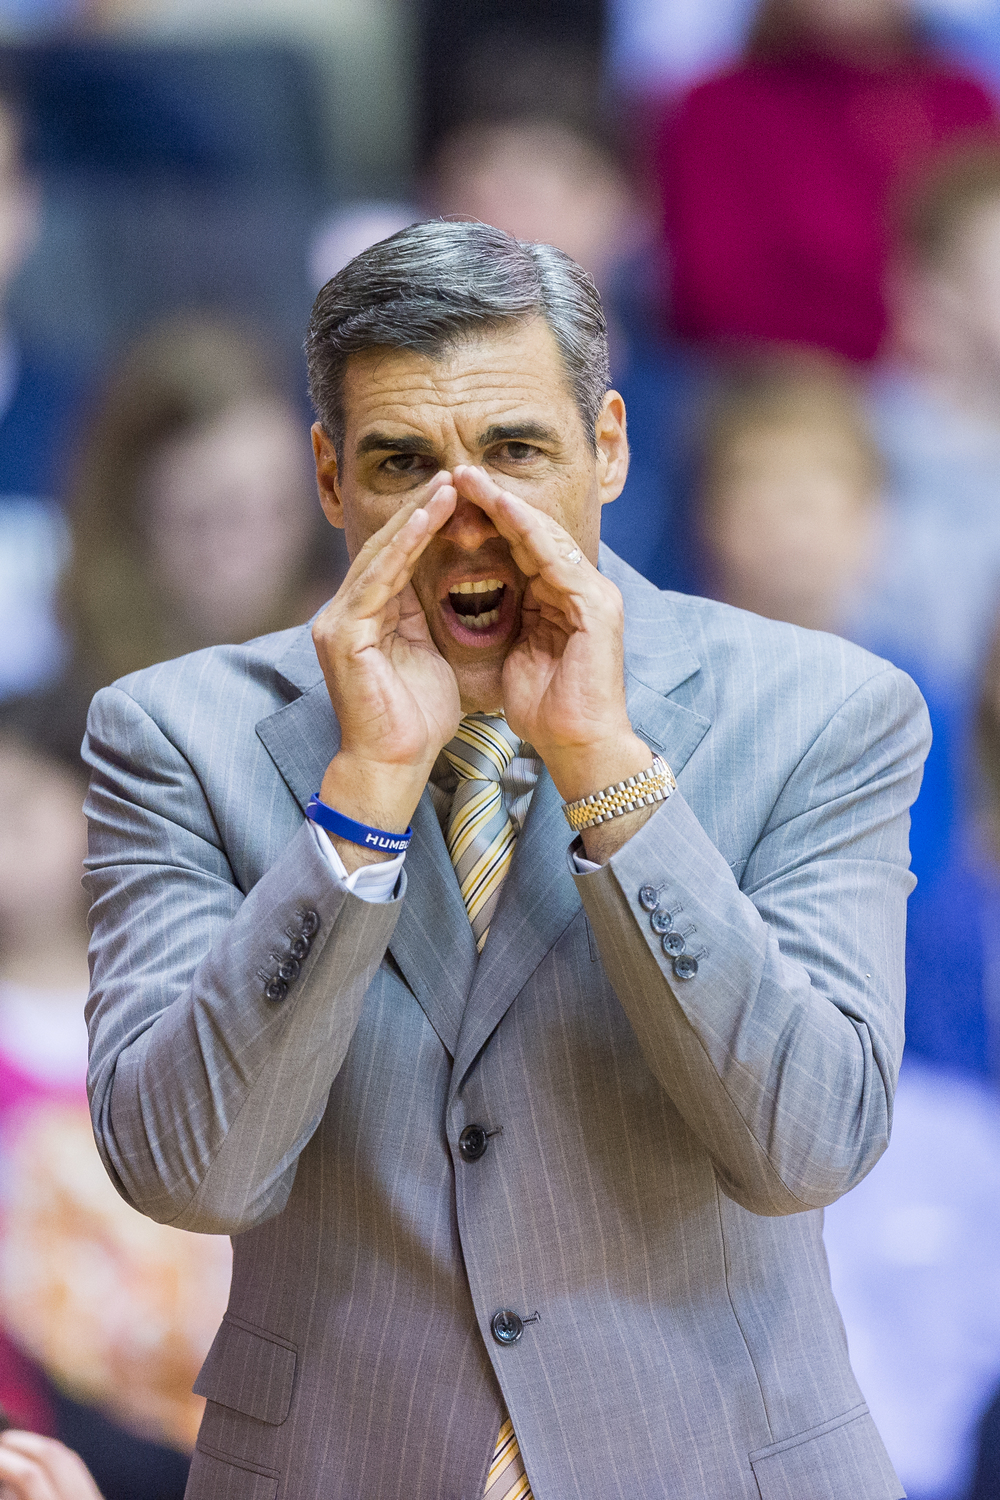 13 December 2015: Villanova Wildcats head coach Jay Wright shouts orders during the NCAA basketball game between the La Salle Explorers and the Villanova Wildcats played at the Pavilion in Villanova, PA. (Photo by Gavin Baker/Icon Sportswire)